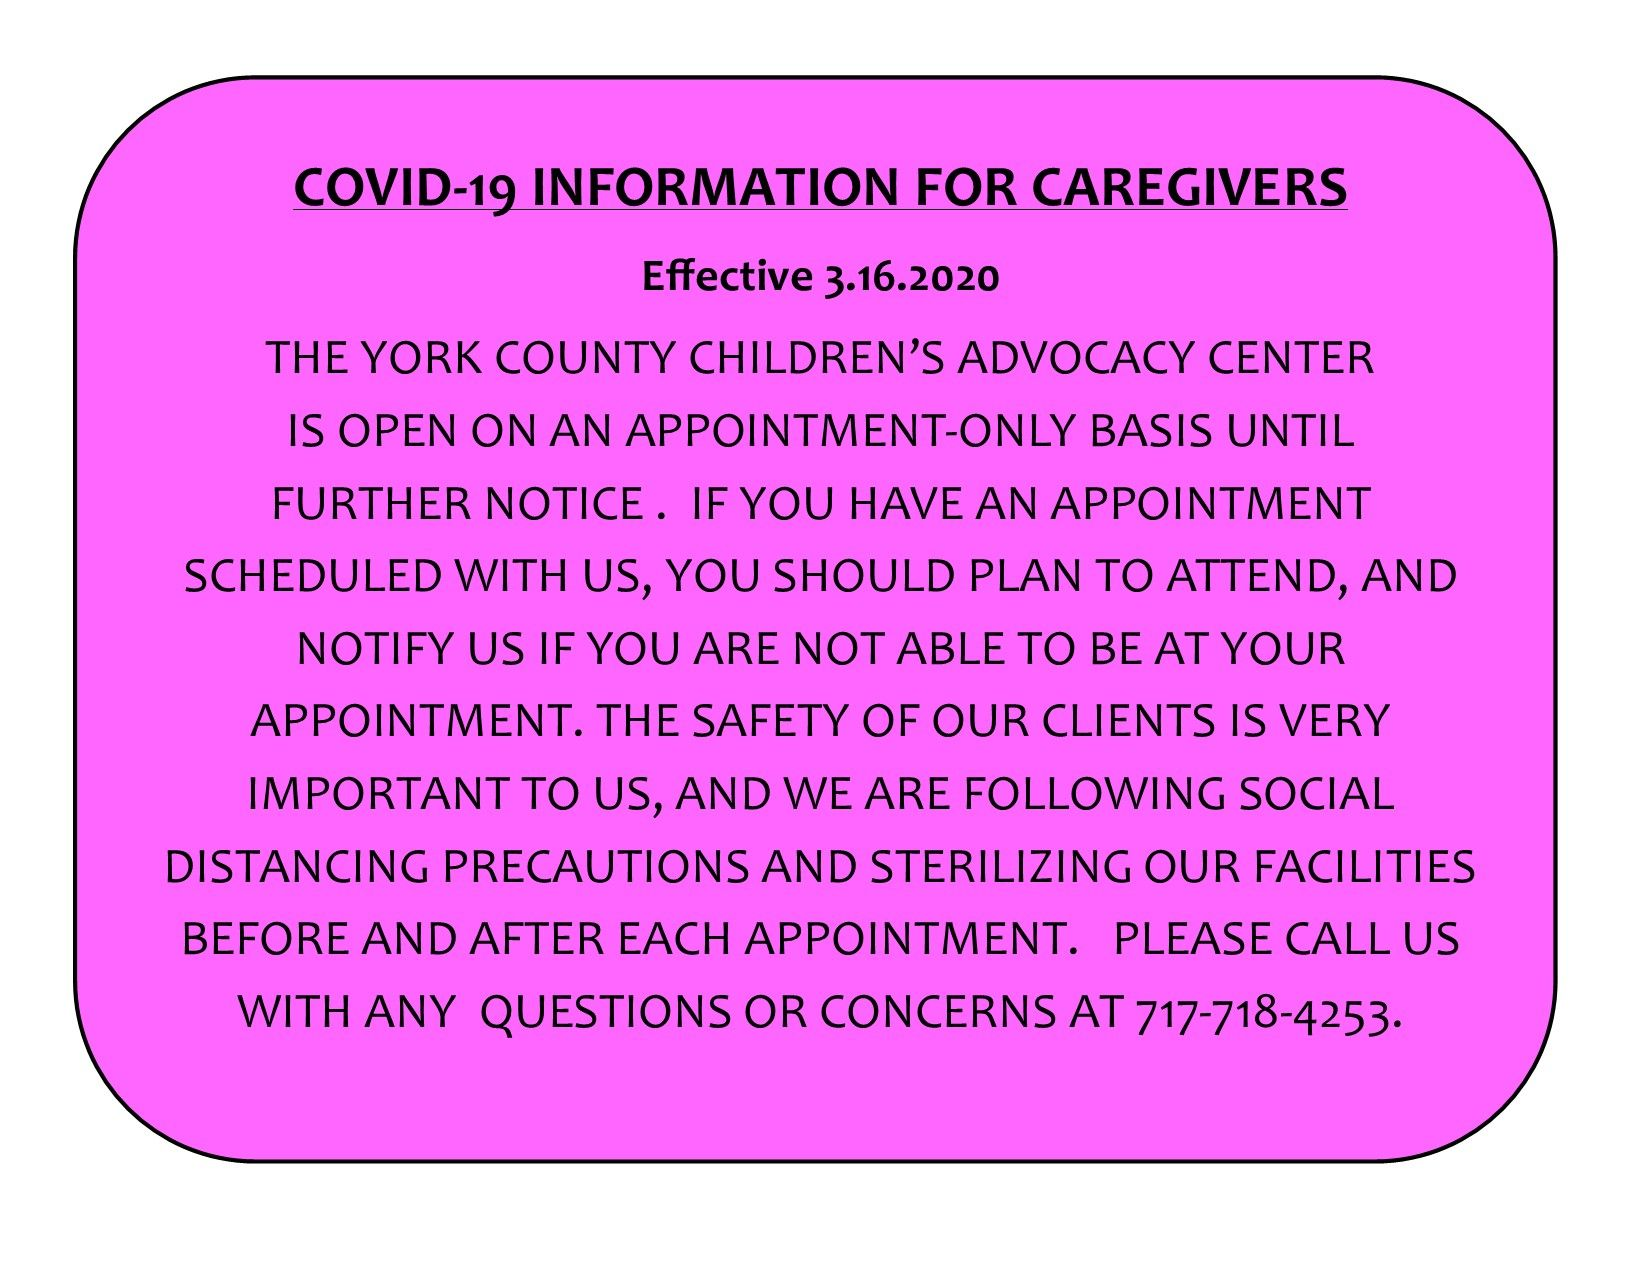 COVID-19 Information for Caregivers